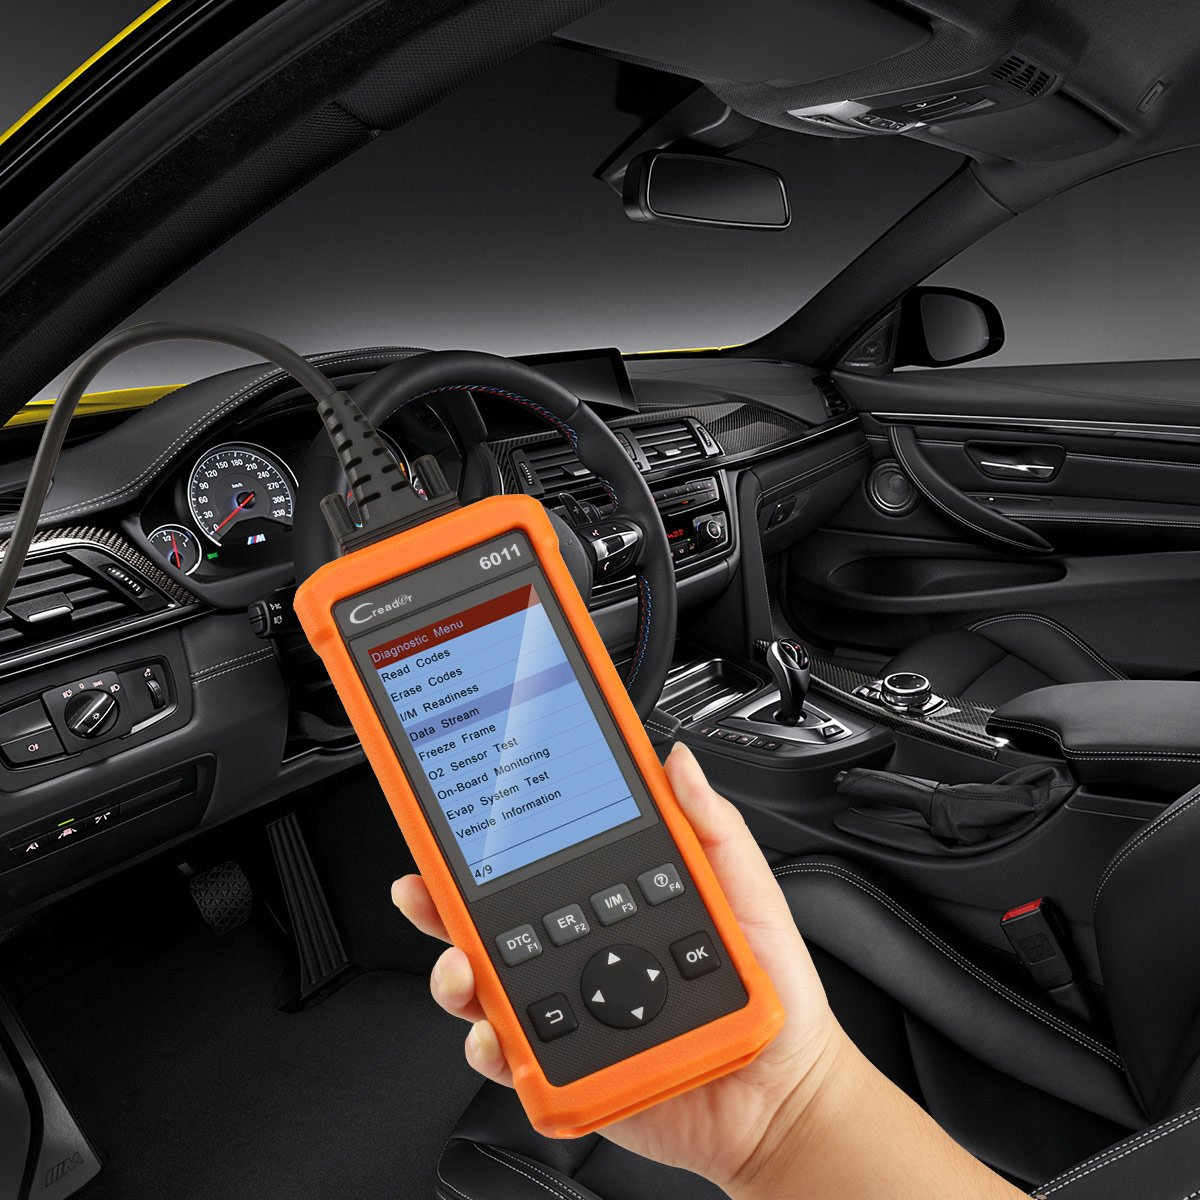 It might not be the flashiest or most powerful airbag code reader you'll see here, but it certainly gets the job done.